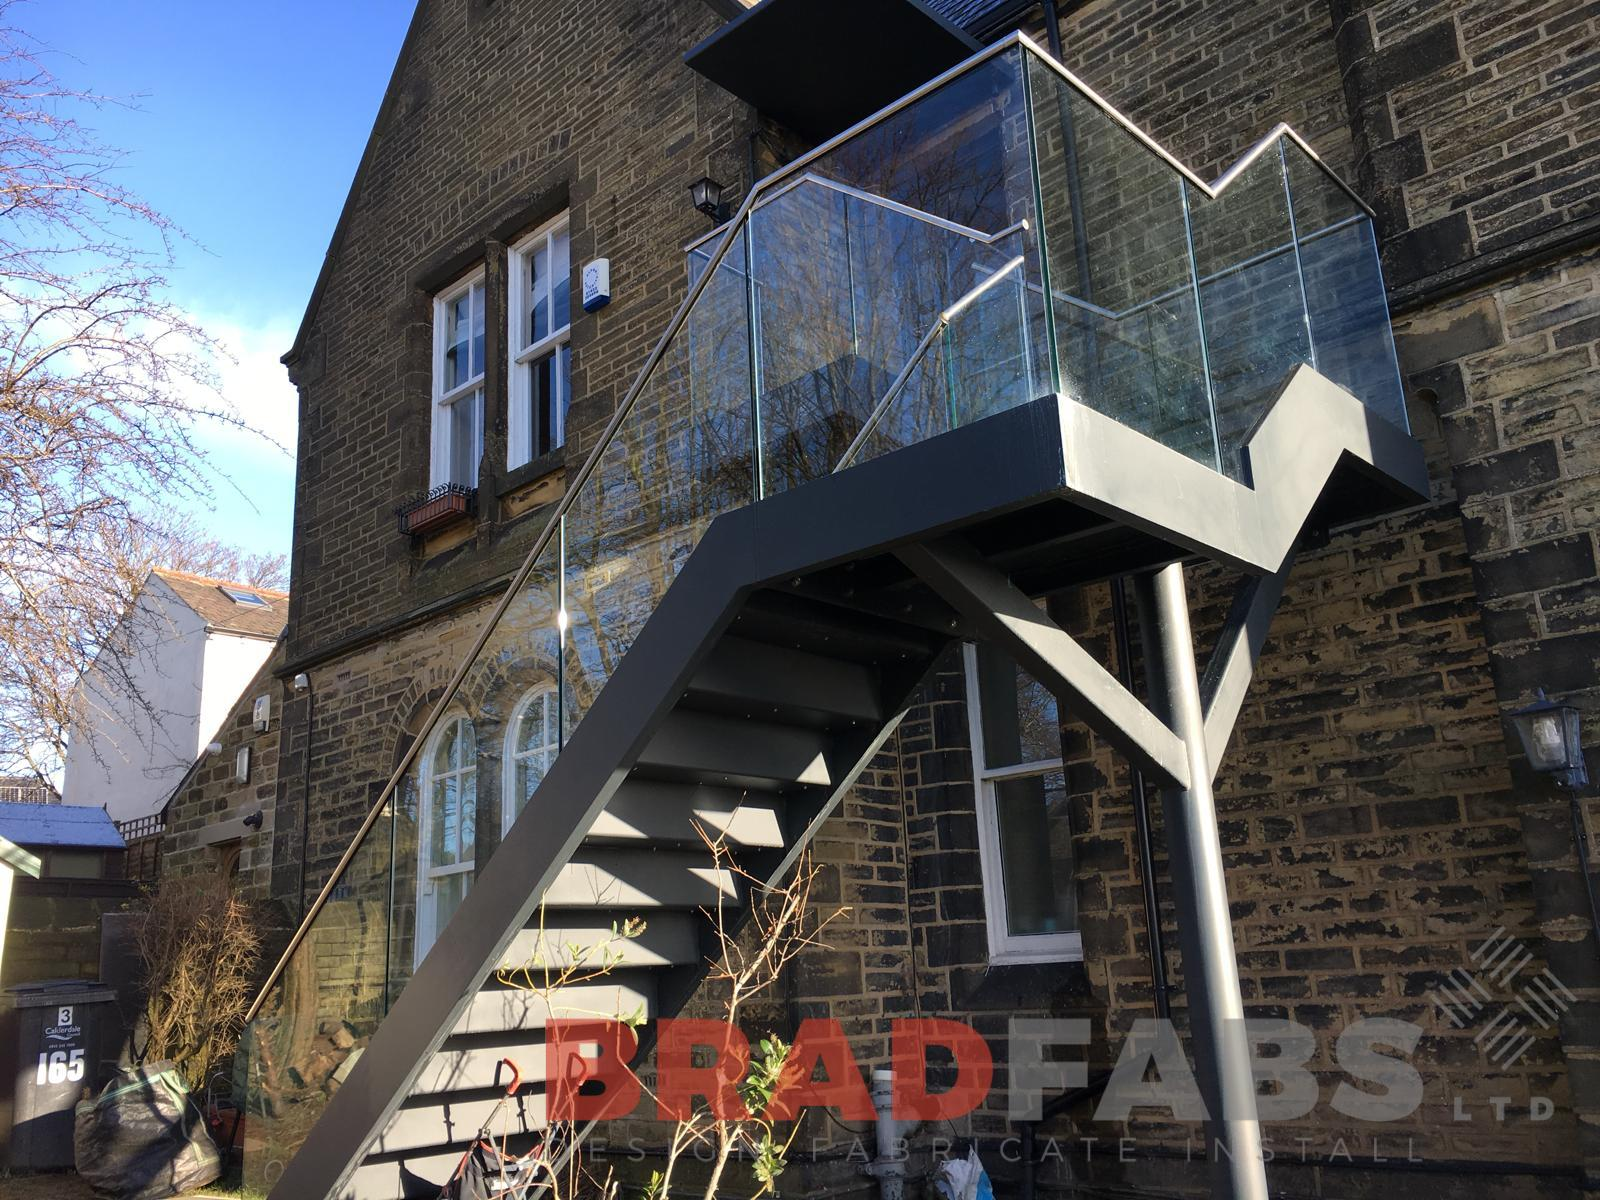 bespoke straight external staircase with infinity glass balustrade and stainless steel handrail, complete with composite decked flooring by Bradfabs Ltd